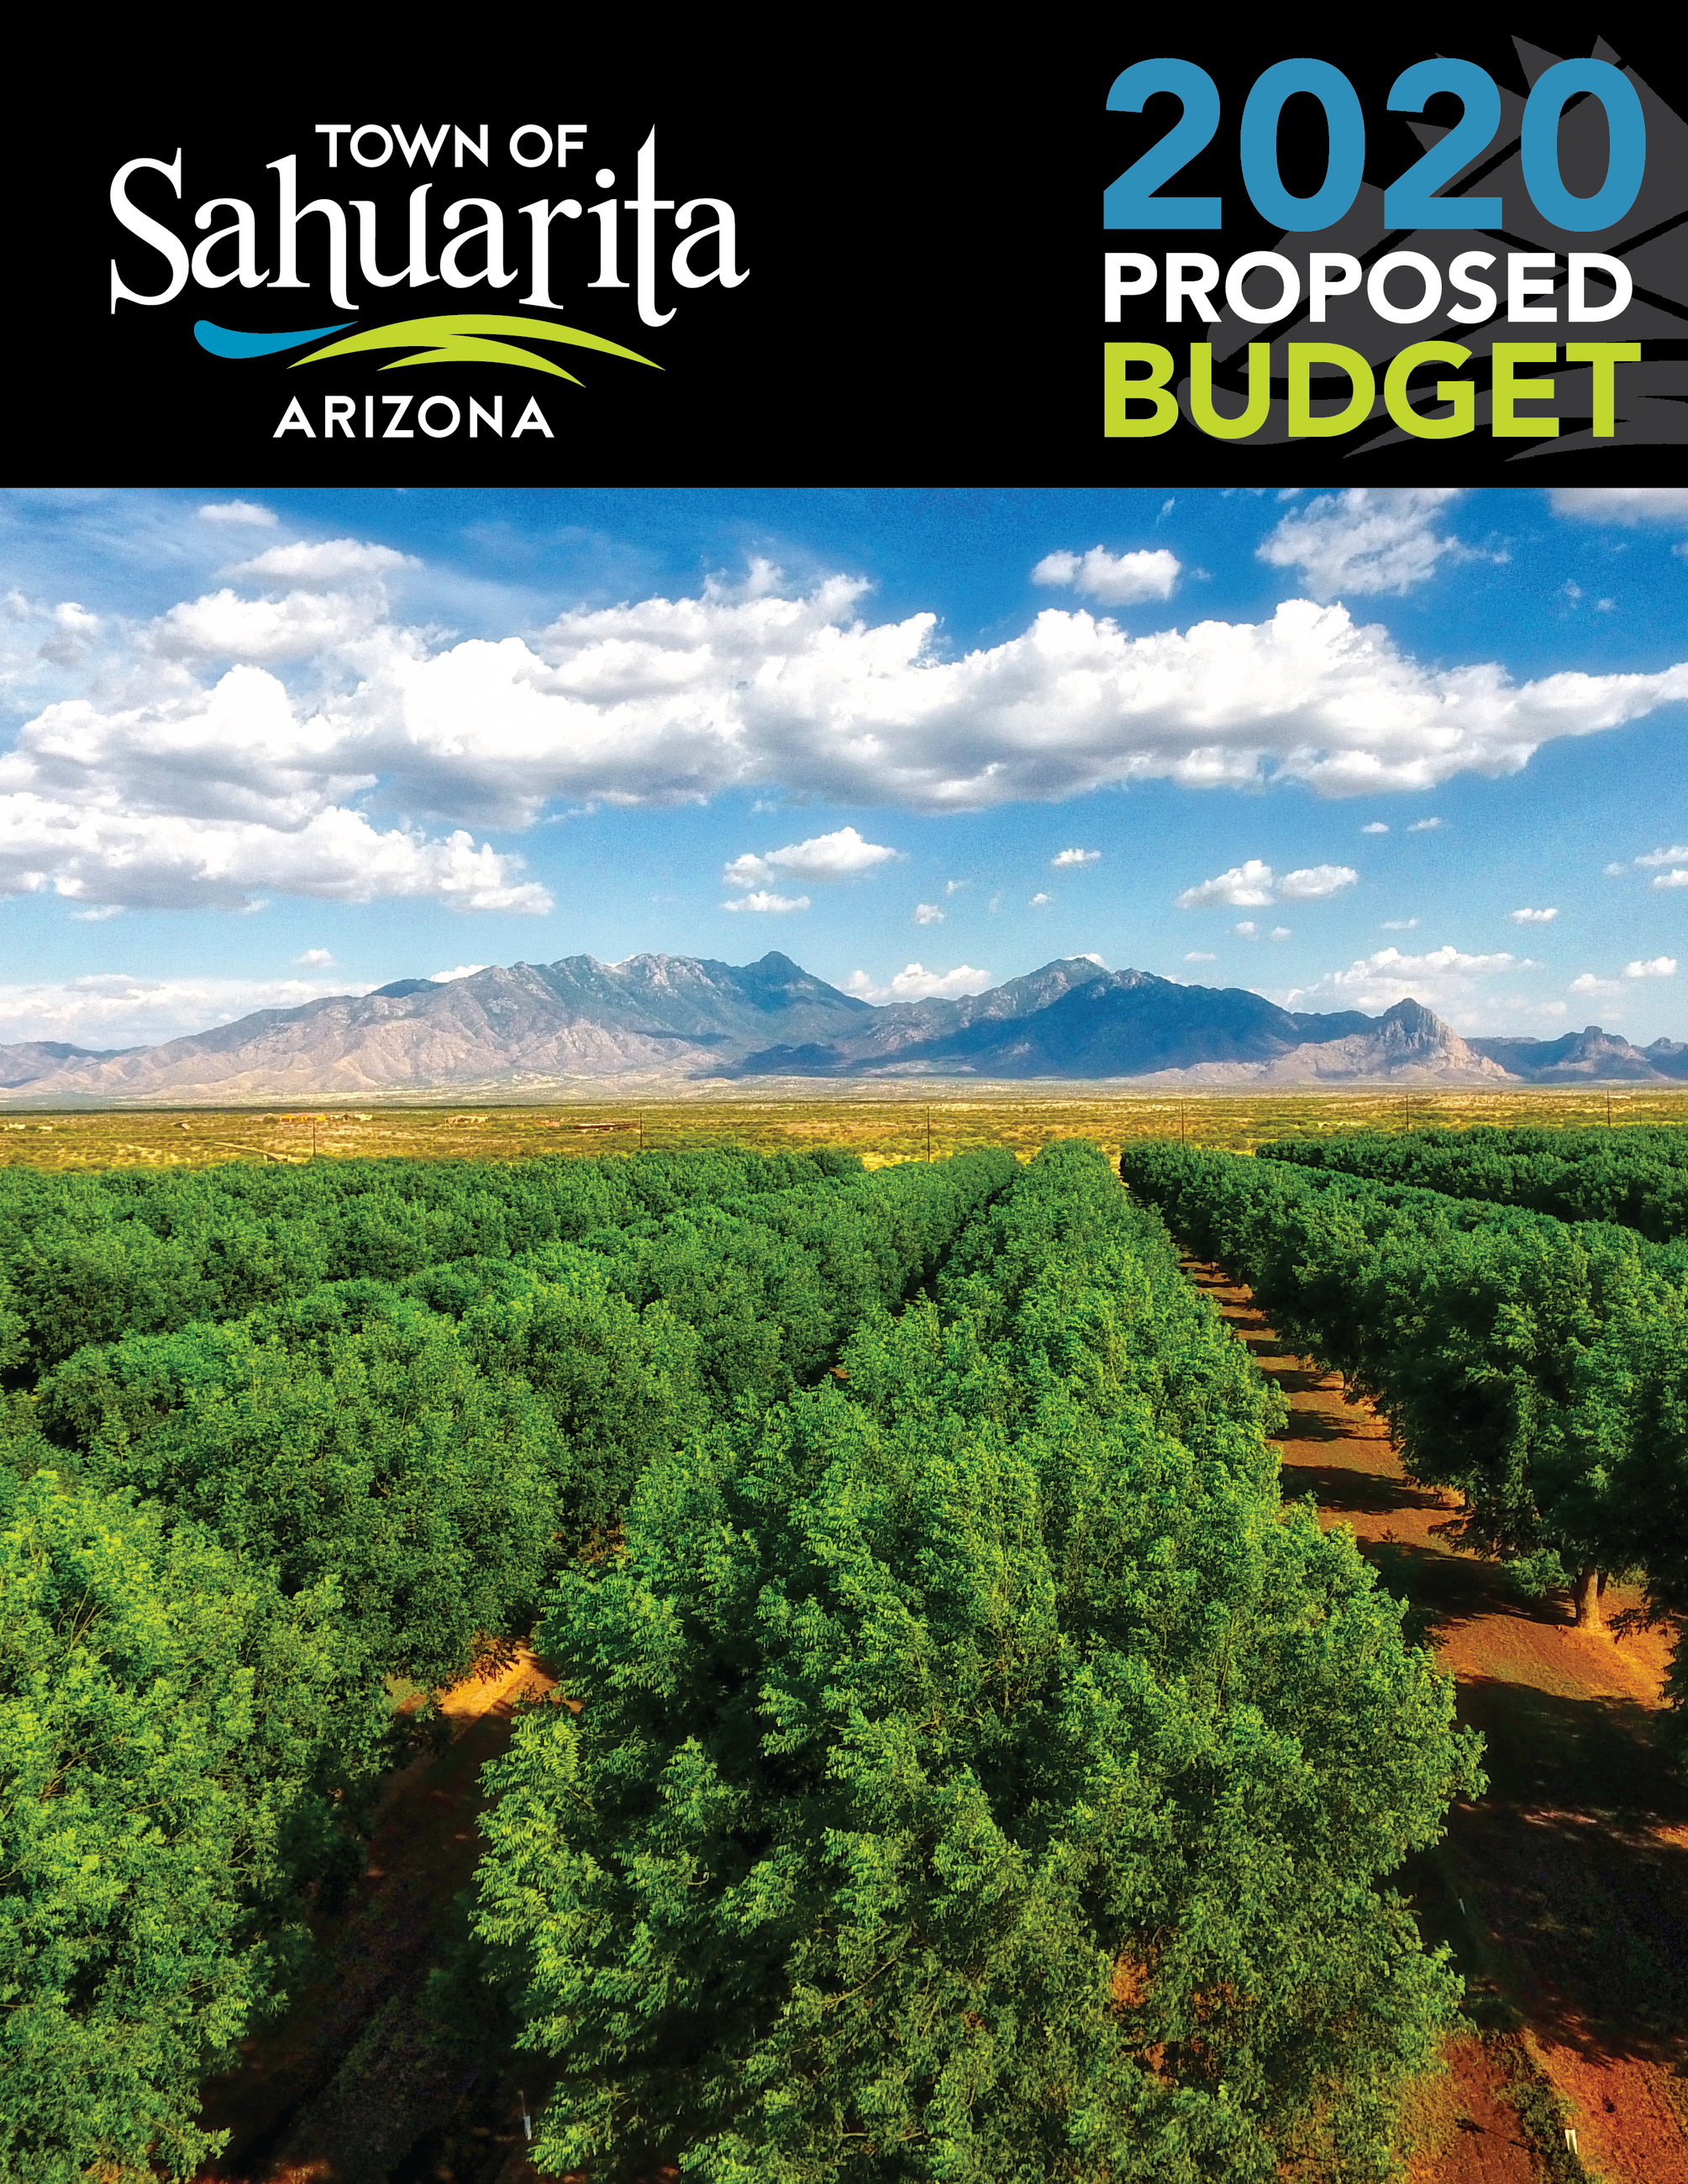 2020 budget cover depicting drone photograph of FICO pecan orchards